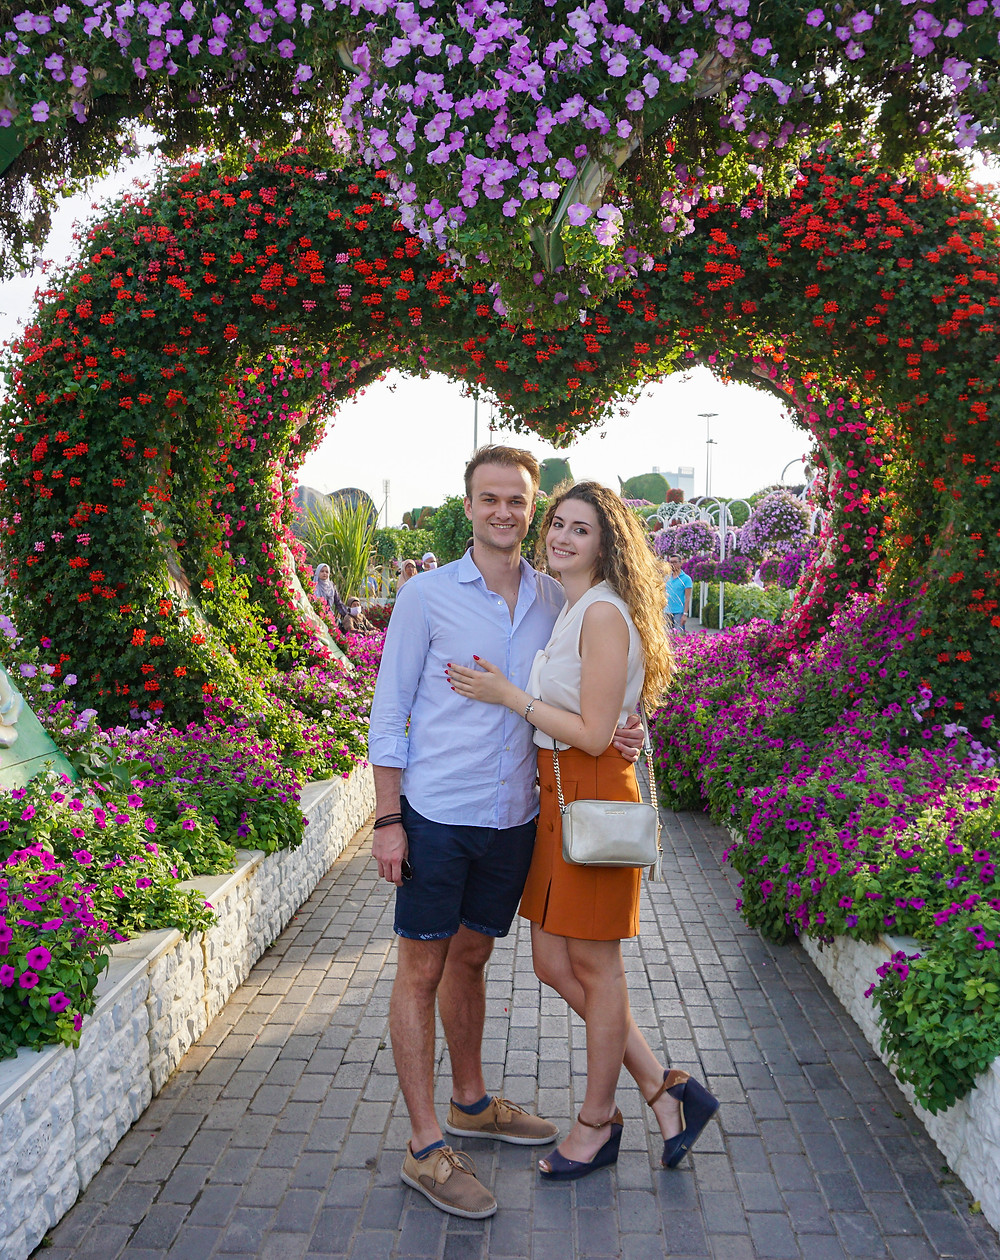 Us at the Dubai Miracle Garden